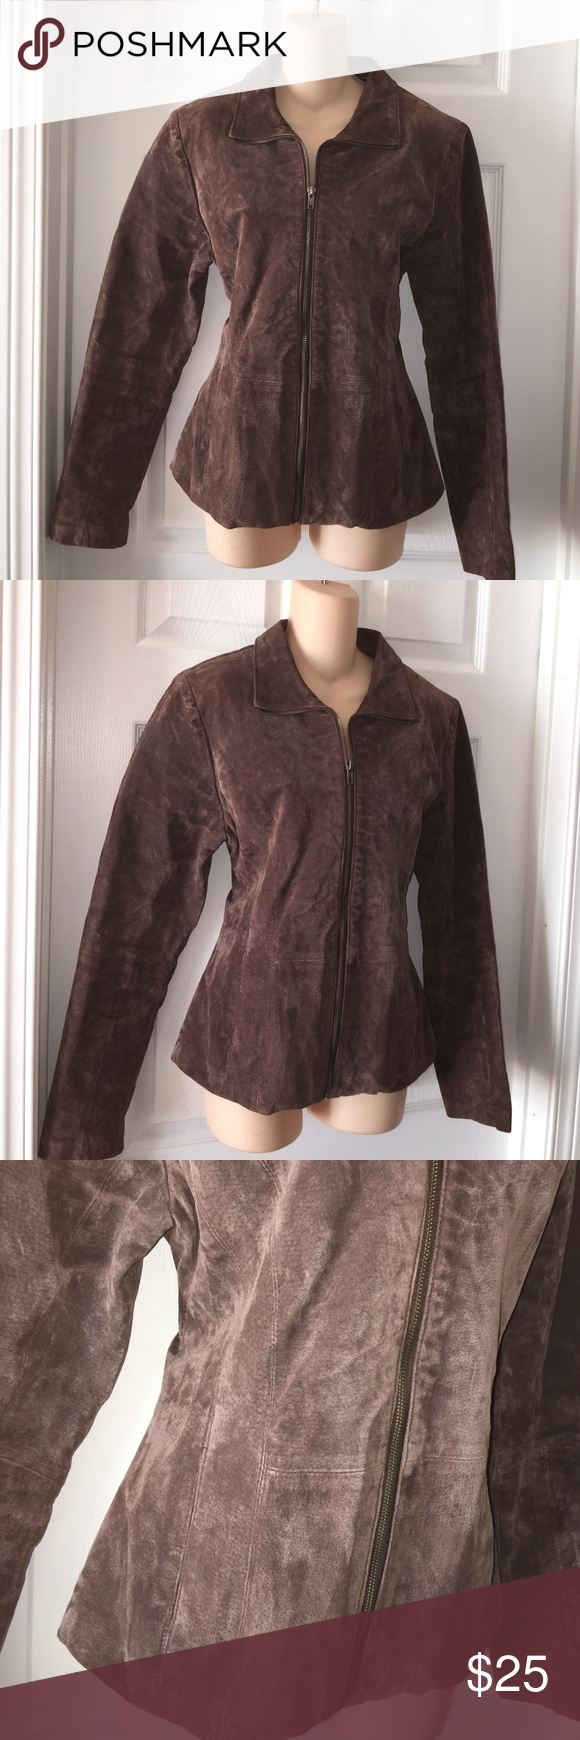 Wilsons Leather 100% Leather Brown jacket Medium very good condition! no rips stains tears Wilsons Leather Jackets & Coats